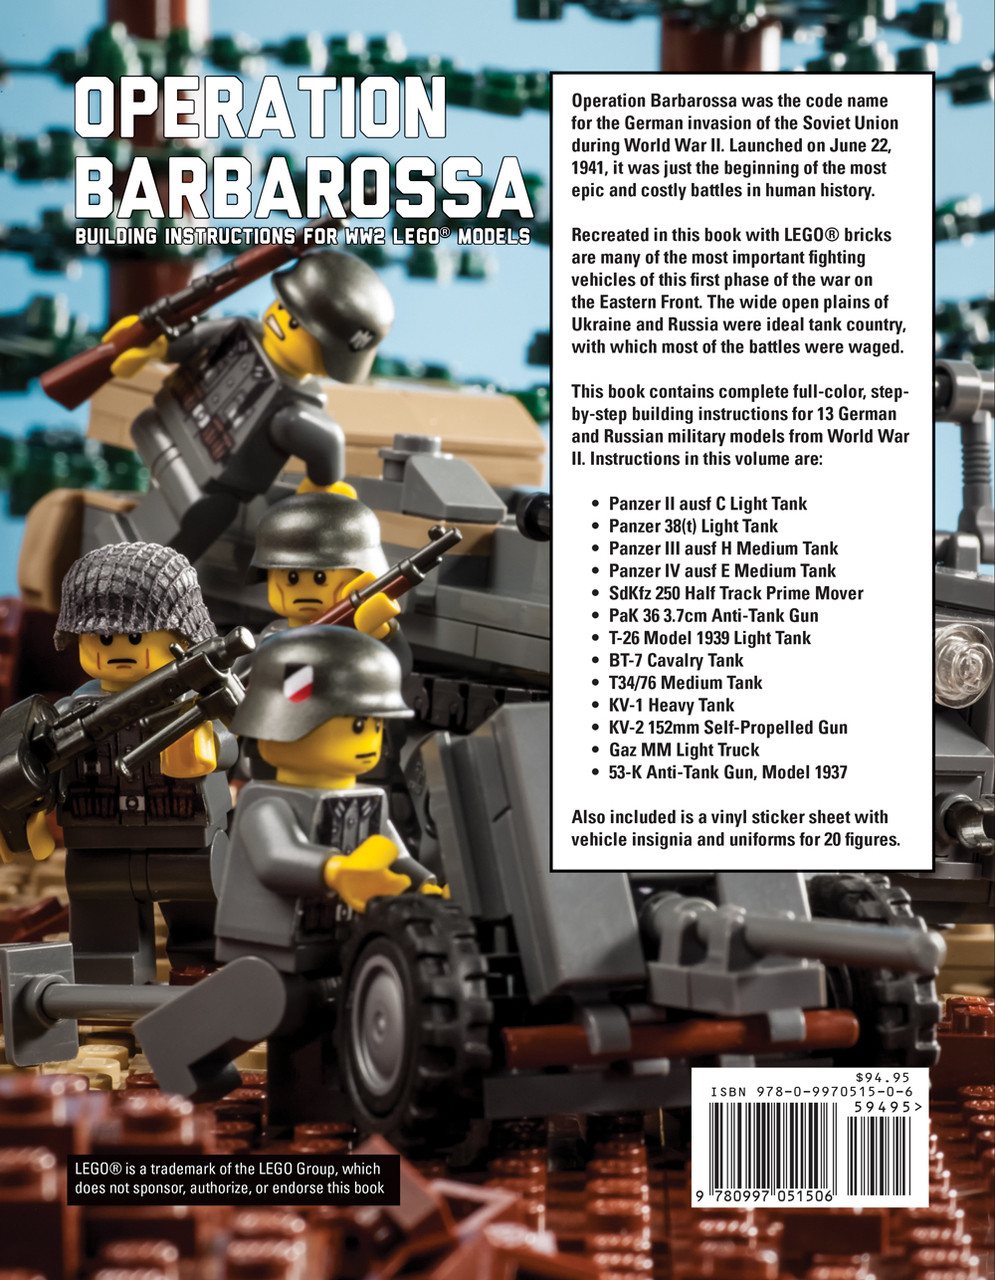 Operation Barbarossa Building Instructions For Wwii Lego Models